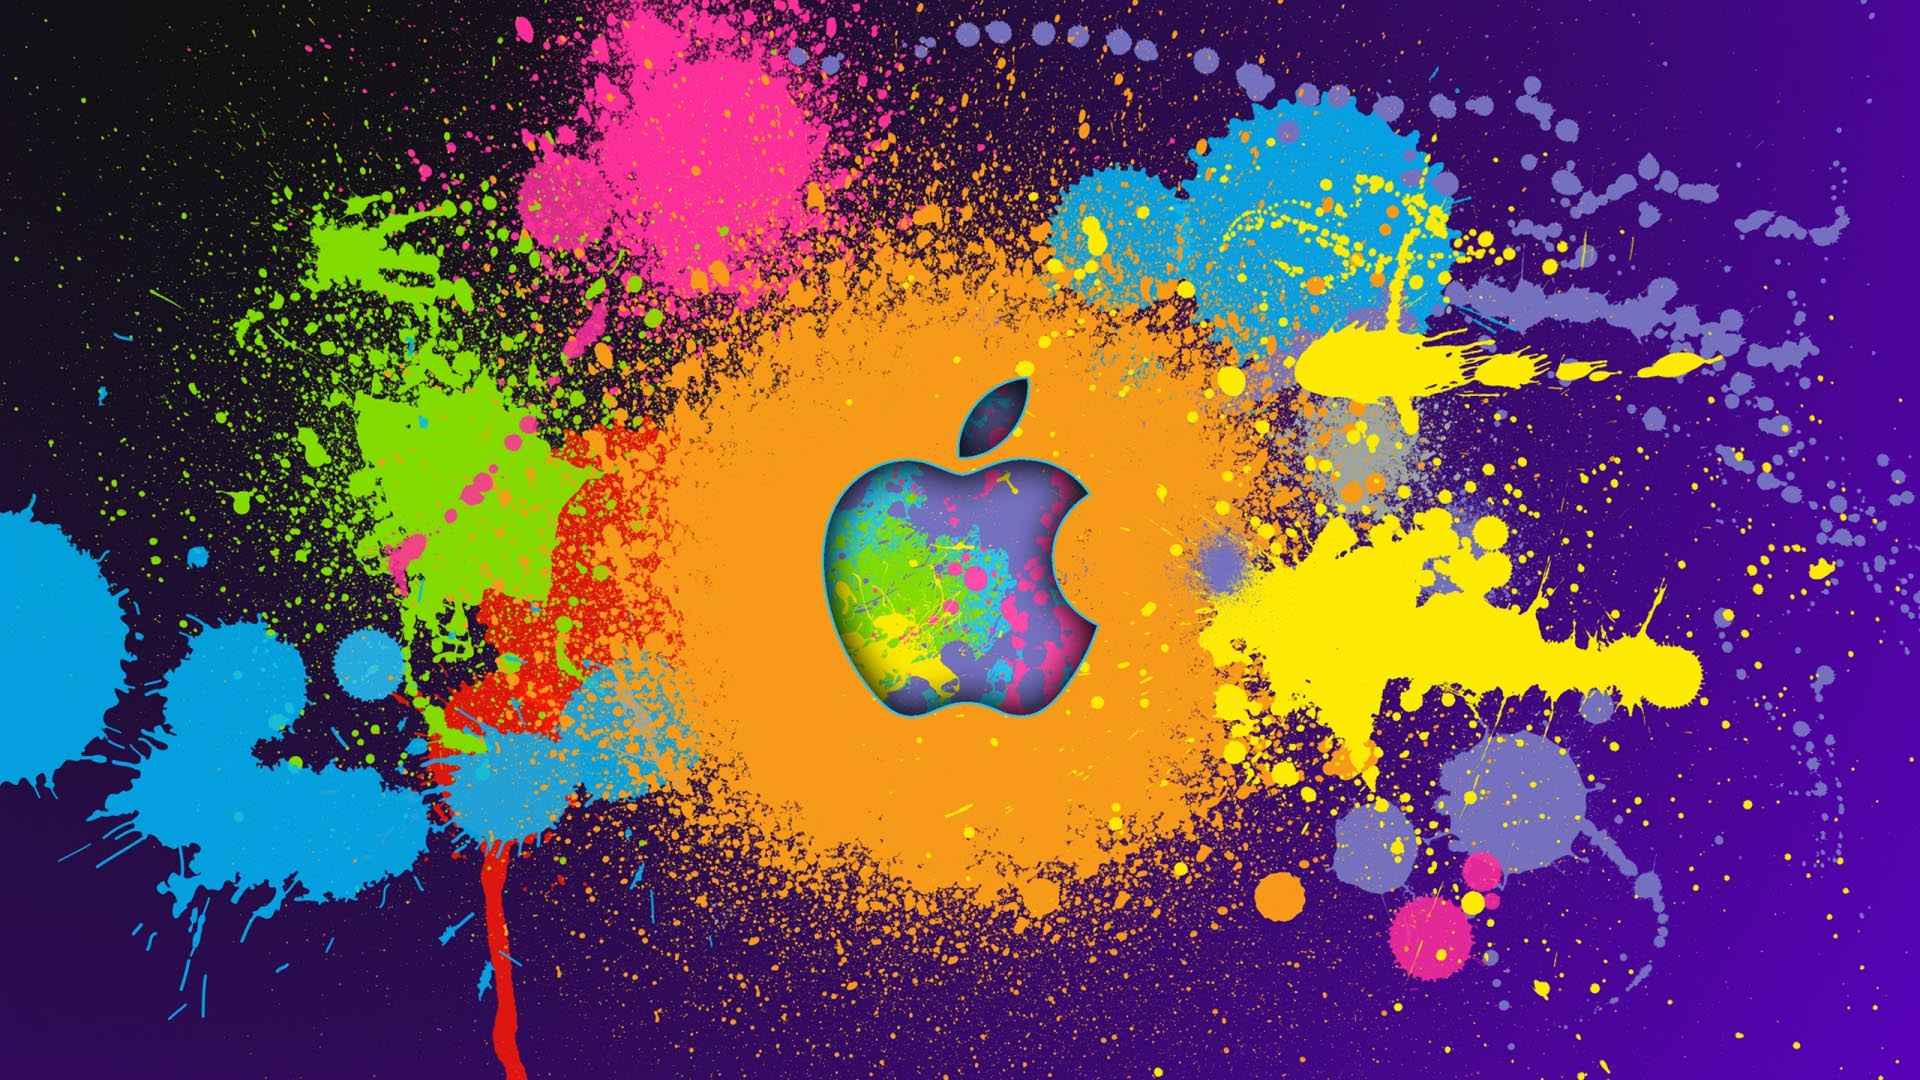 cool apple wallpaper | 1920x1080 | #77919